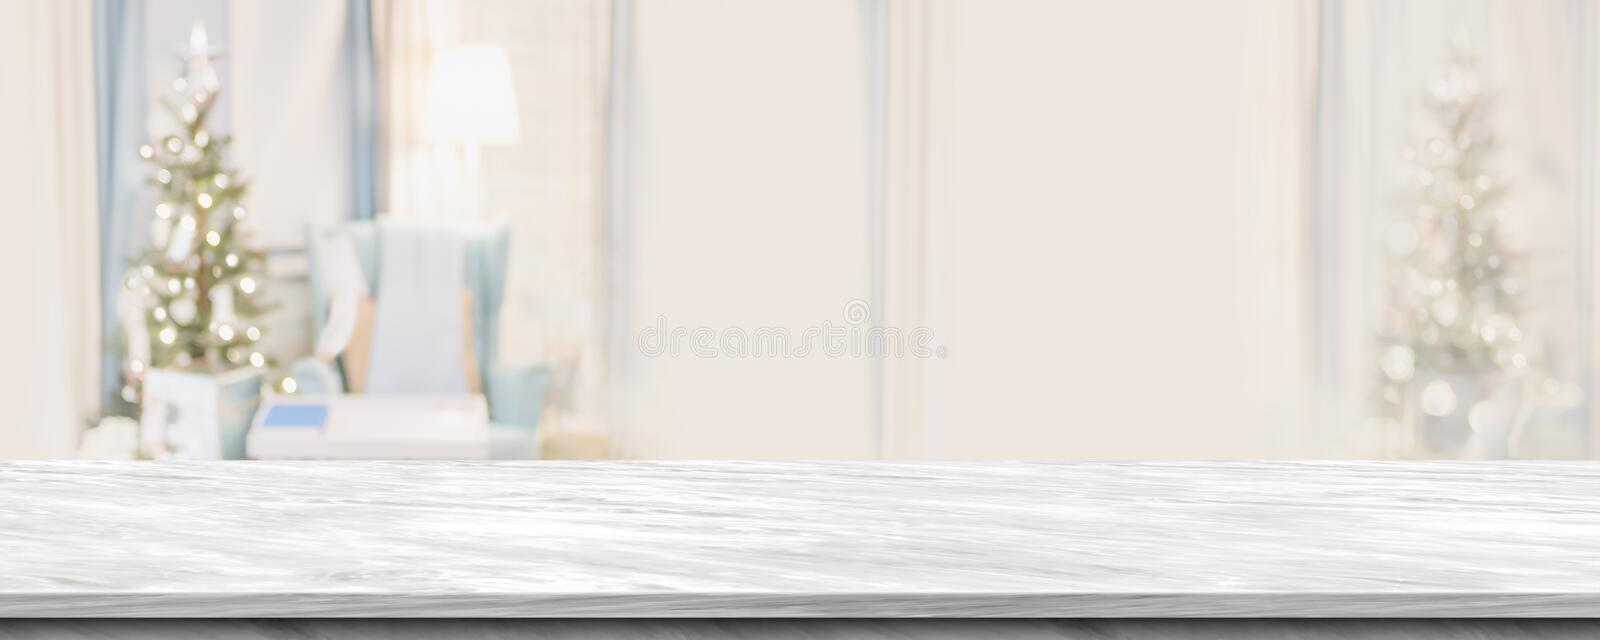 Empty grey marble table top with abstract warm living room decor royalty free stock image